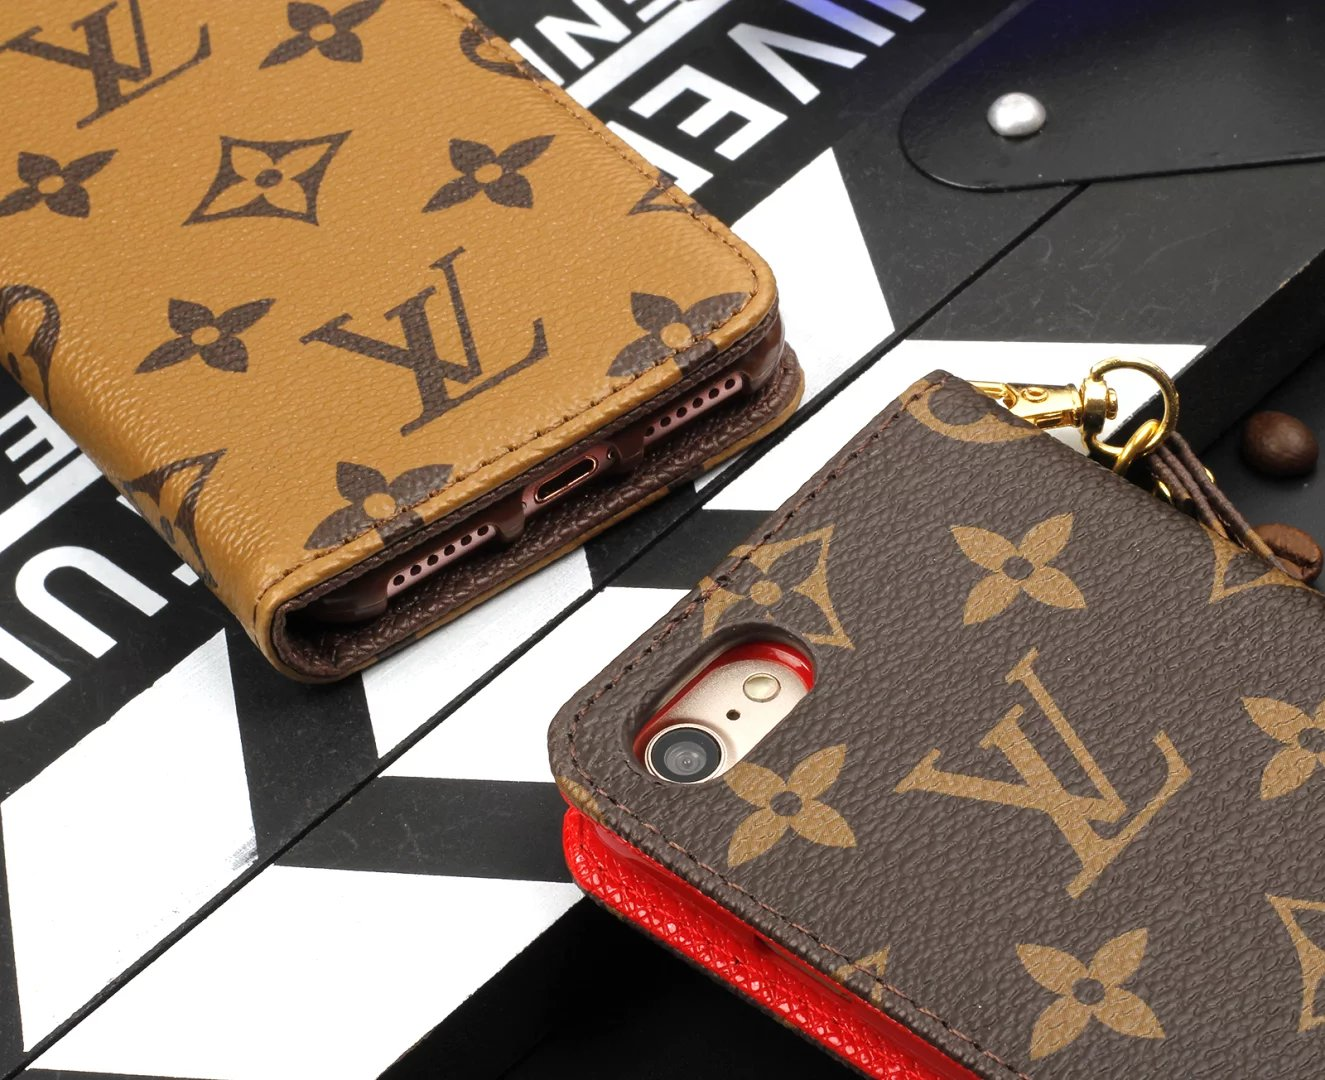 iphone hülle selbst gestalten iphone hülle individuell Louis Vuitton iphone6s plus hülle kosten iphone 6 handyhülle bedrucken handy cover mit eigenem foto iphone 6s Plus 7 zoll fotos auf iphone handy design hülle